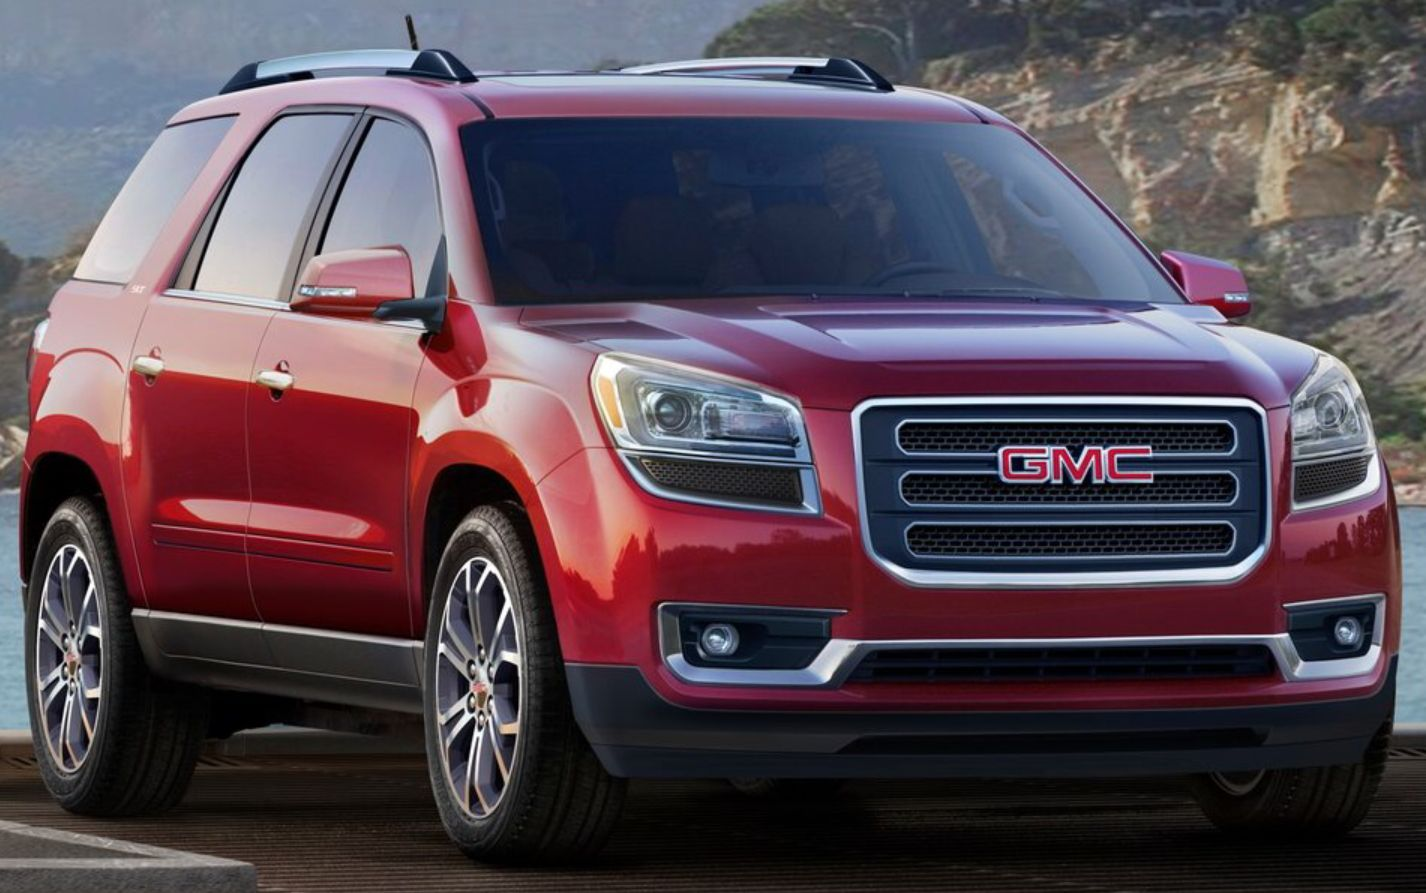 Pin By Scott Brawley On Gmc With Images Gmc Suv Crossover Suv